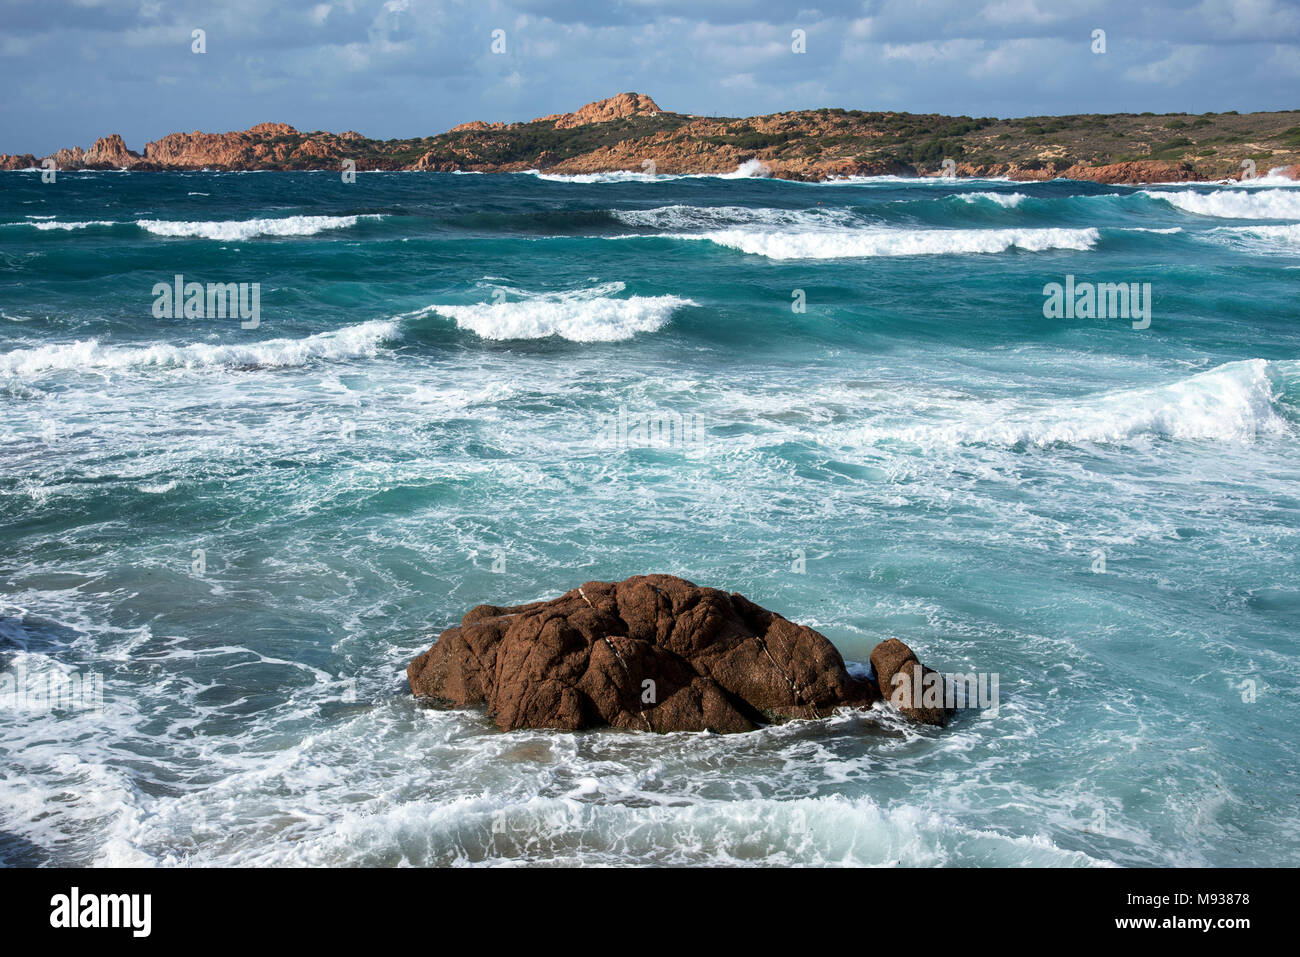 a view of the Mediterranean sea, with a strong swell, in La Marinedda beach, in Isola Rossa, Sardinia, Italy - Stock Image